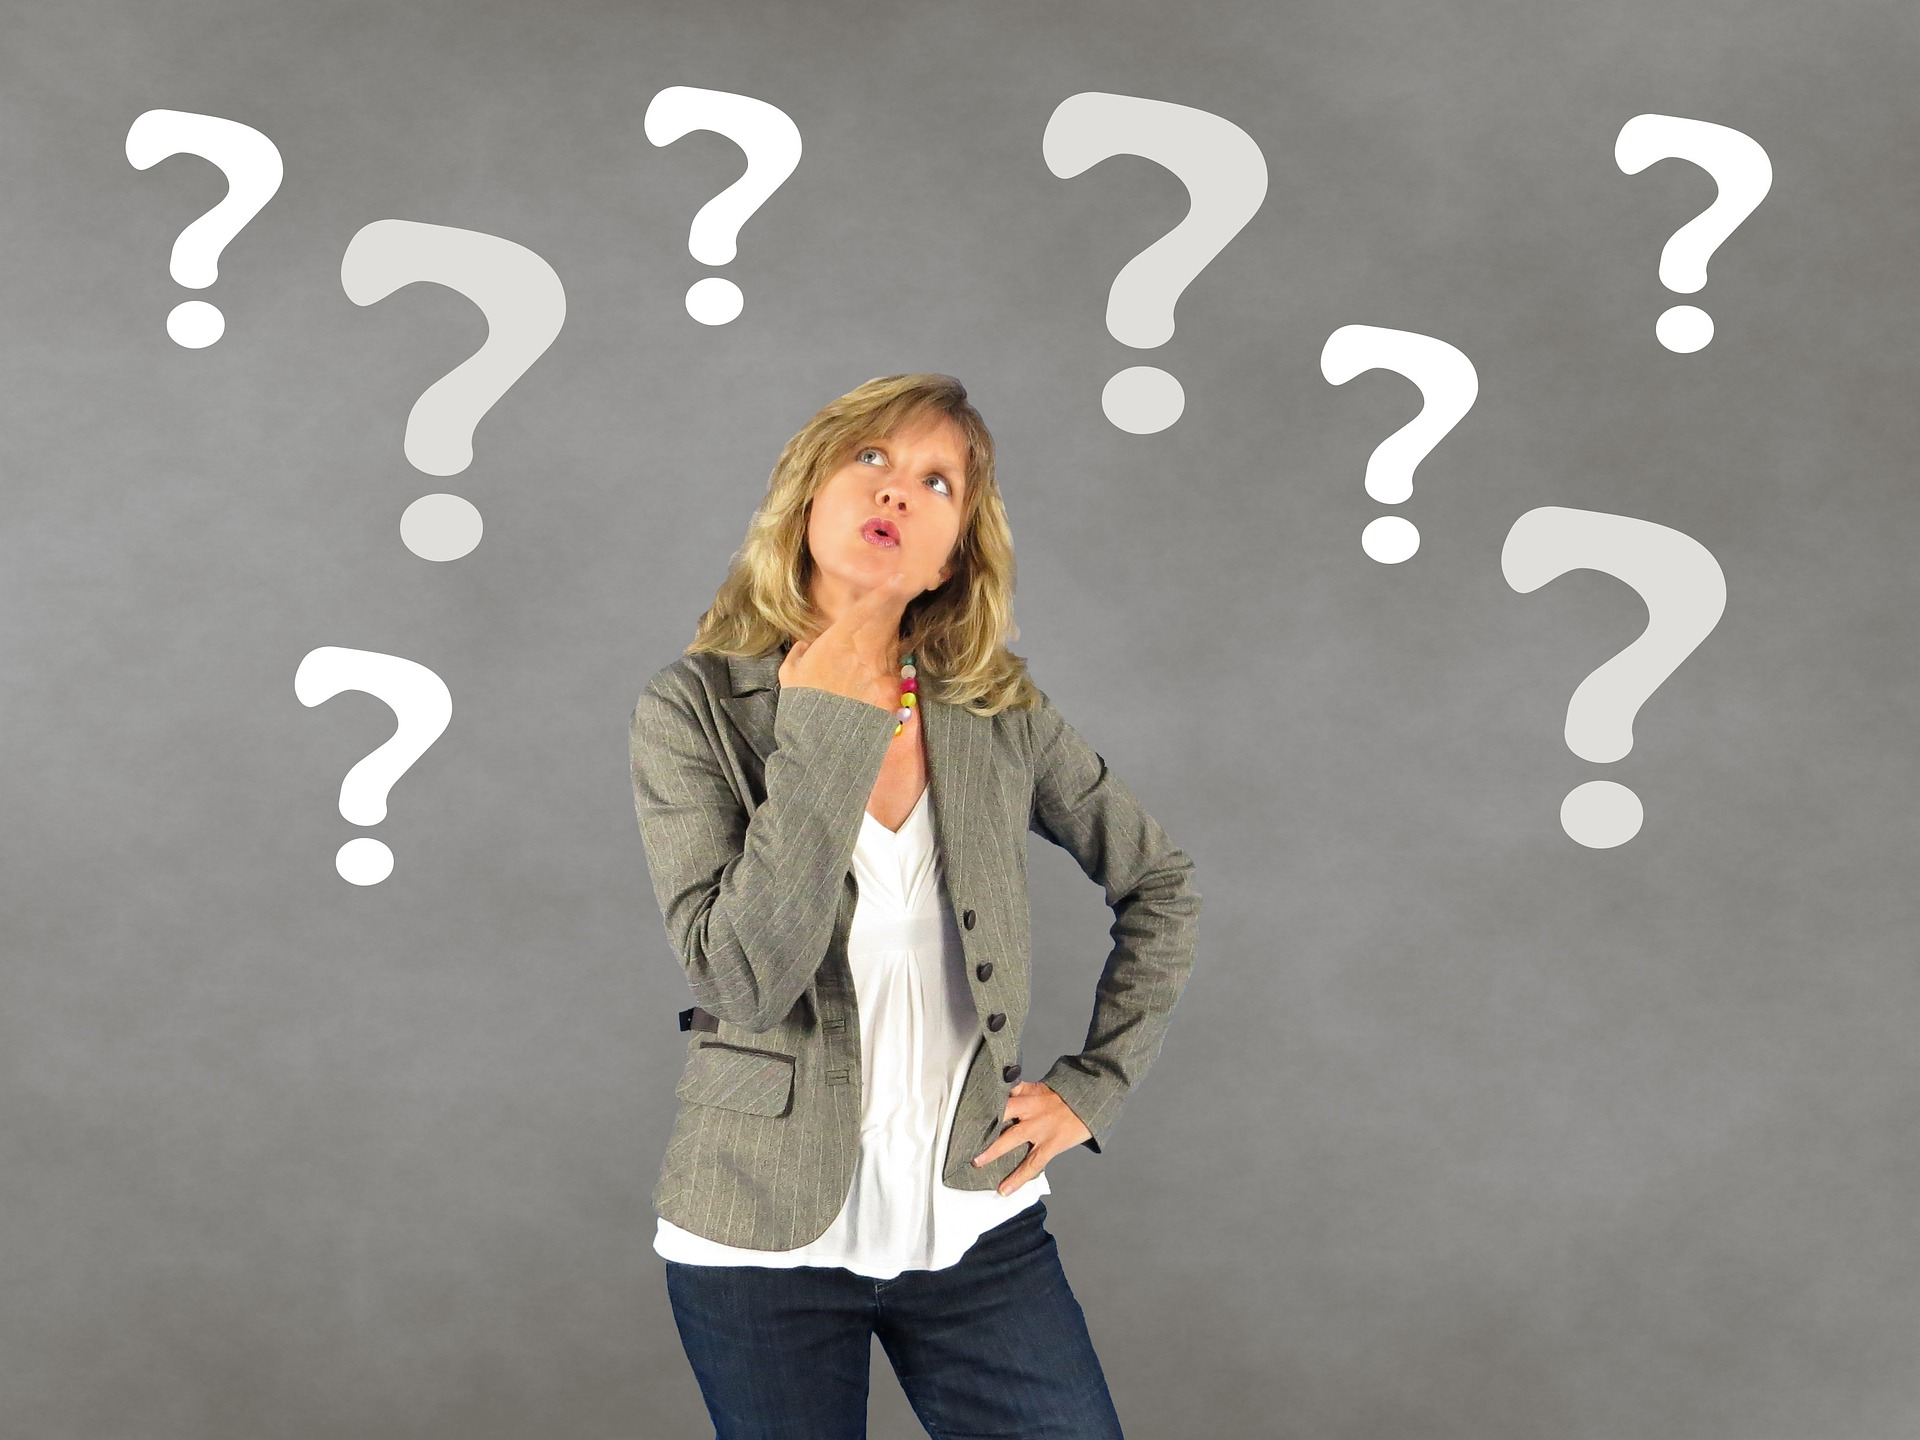 woman with floating question marks